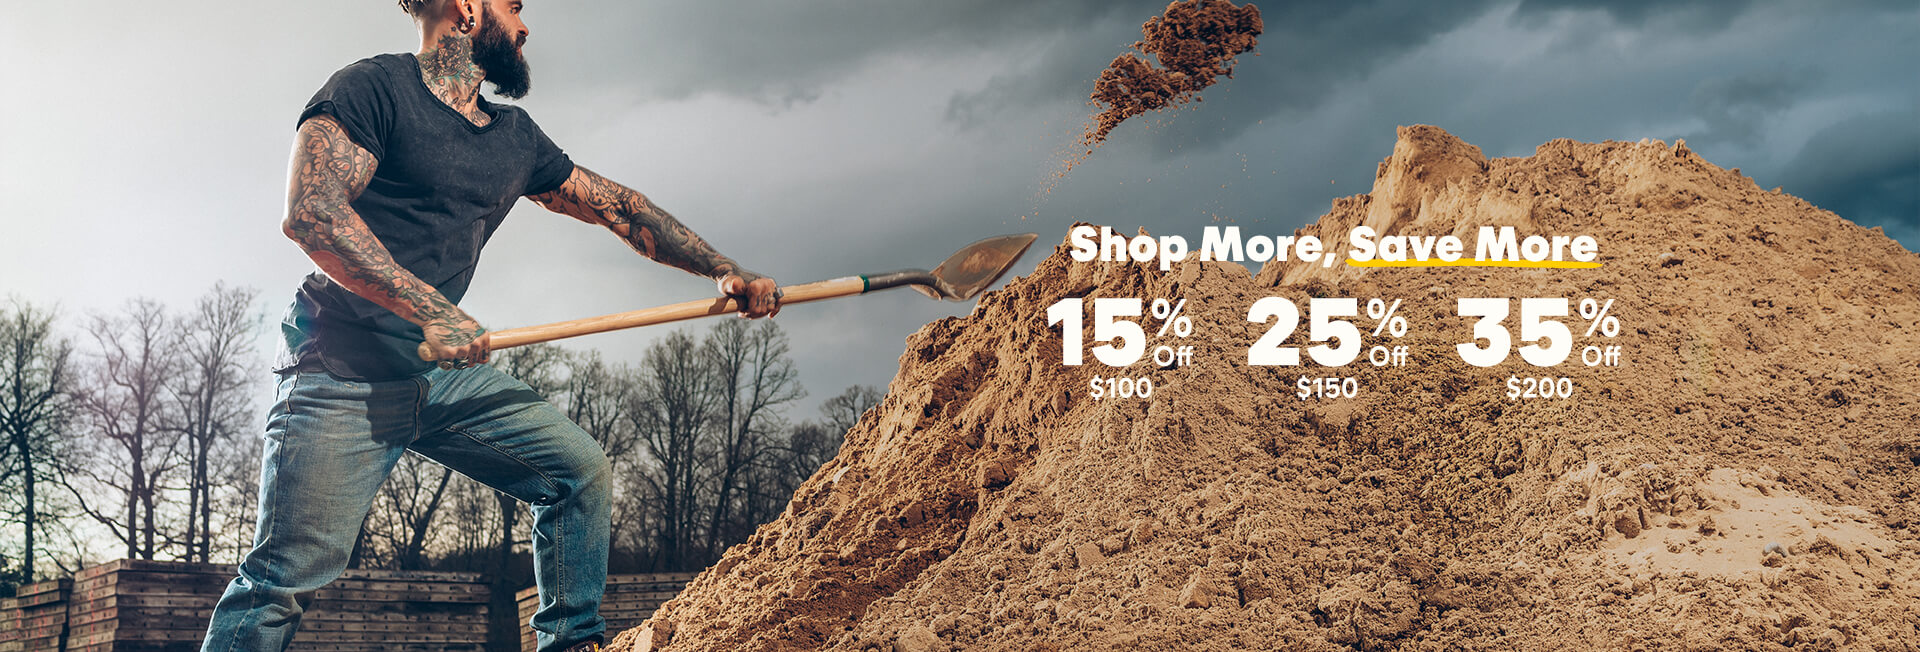 Shop more, save more: 15% off $100 | 25% off $150 | 35% off $200.